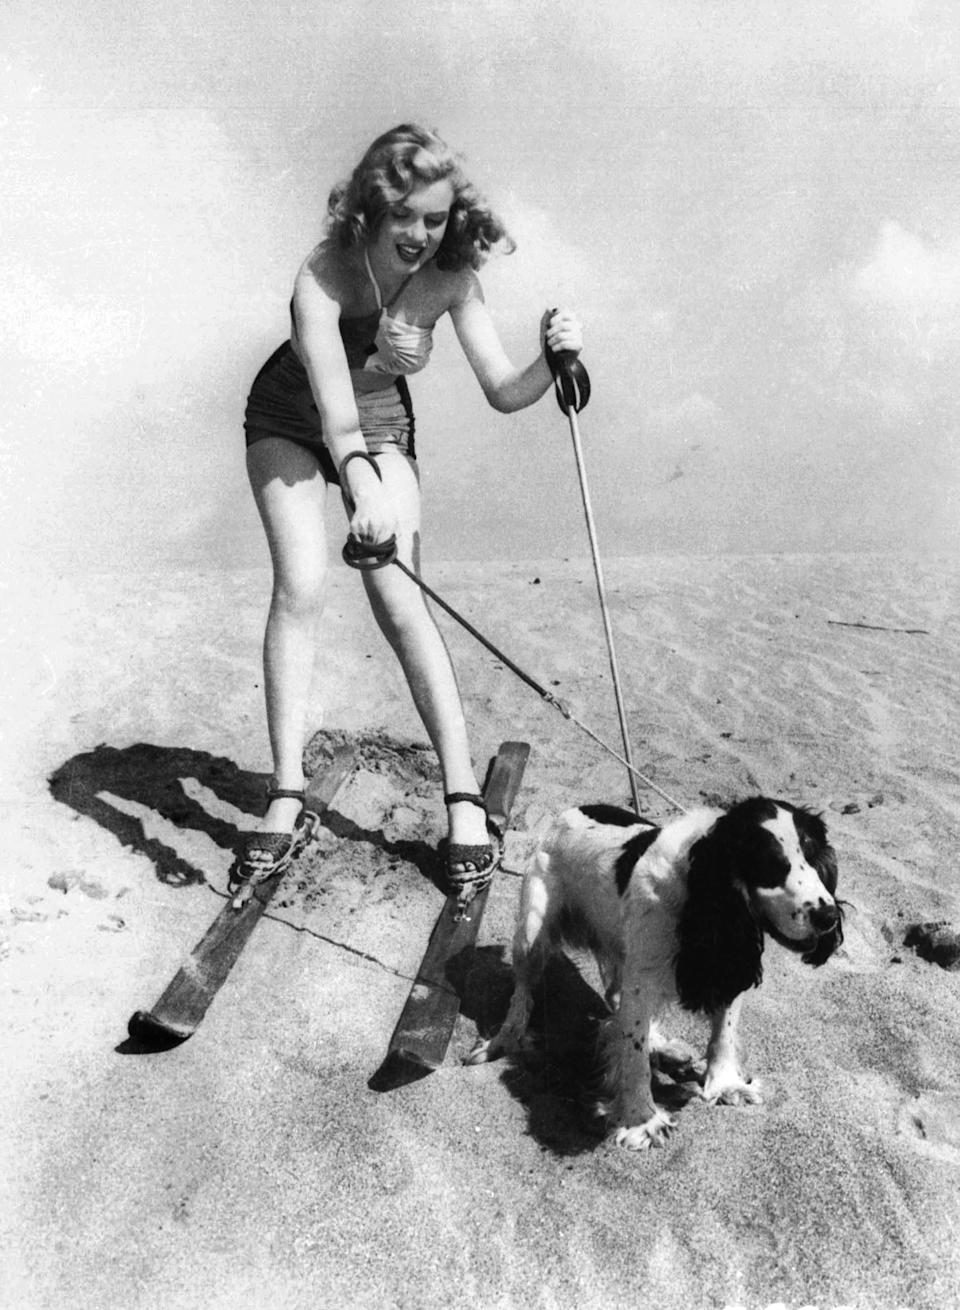 FILE - In this January 1, 1947 file photo, starlet Marilyn Monroe plays at the beach with her dog Ruffles. (AP Photo, File)